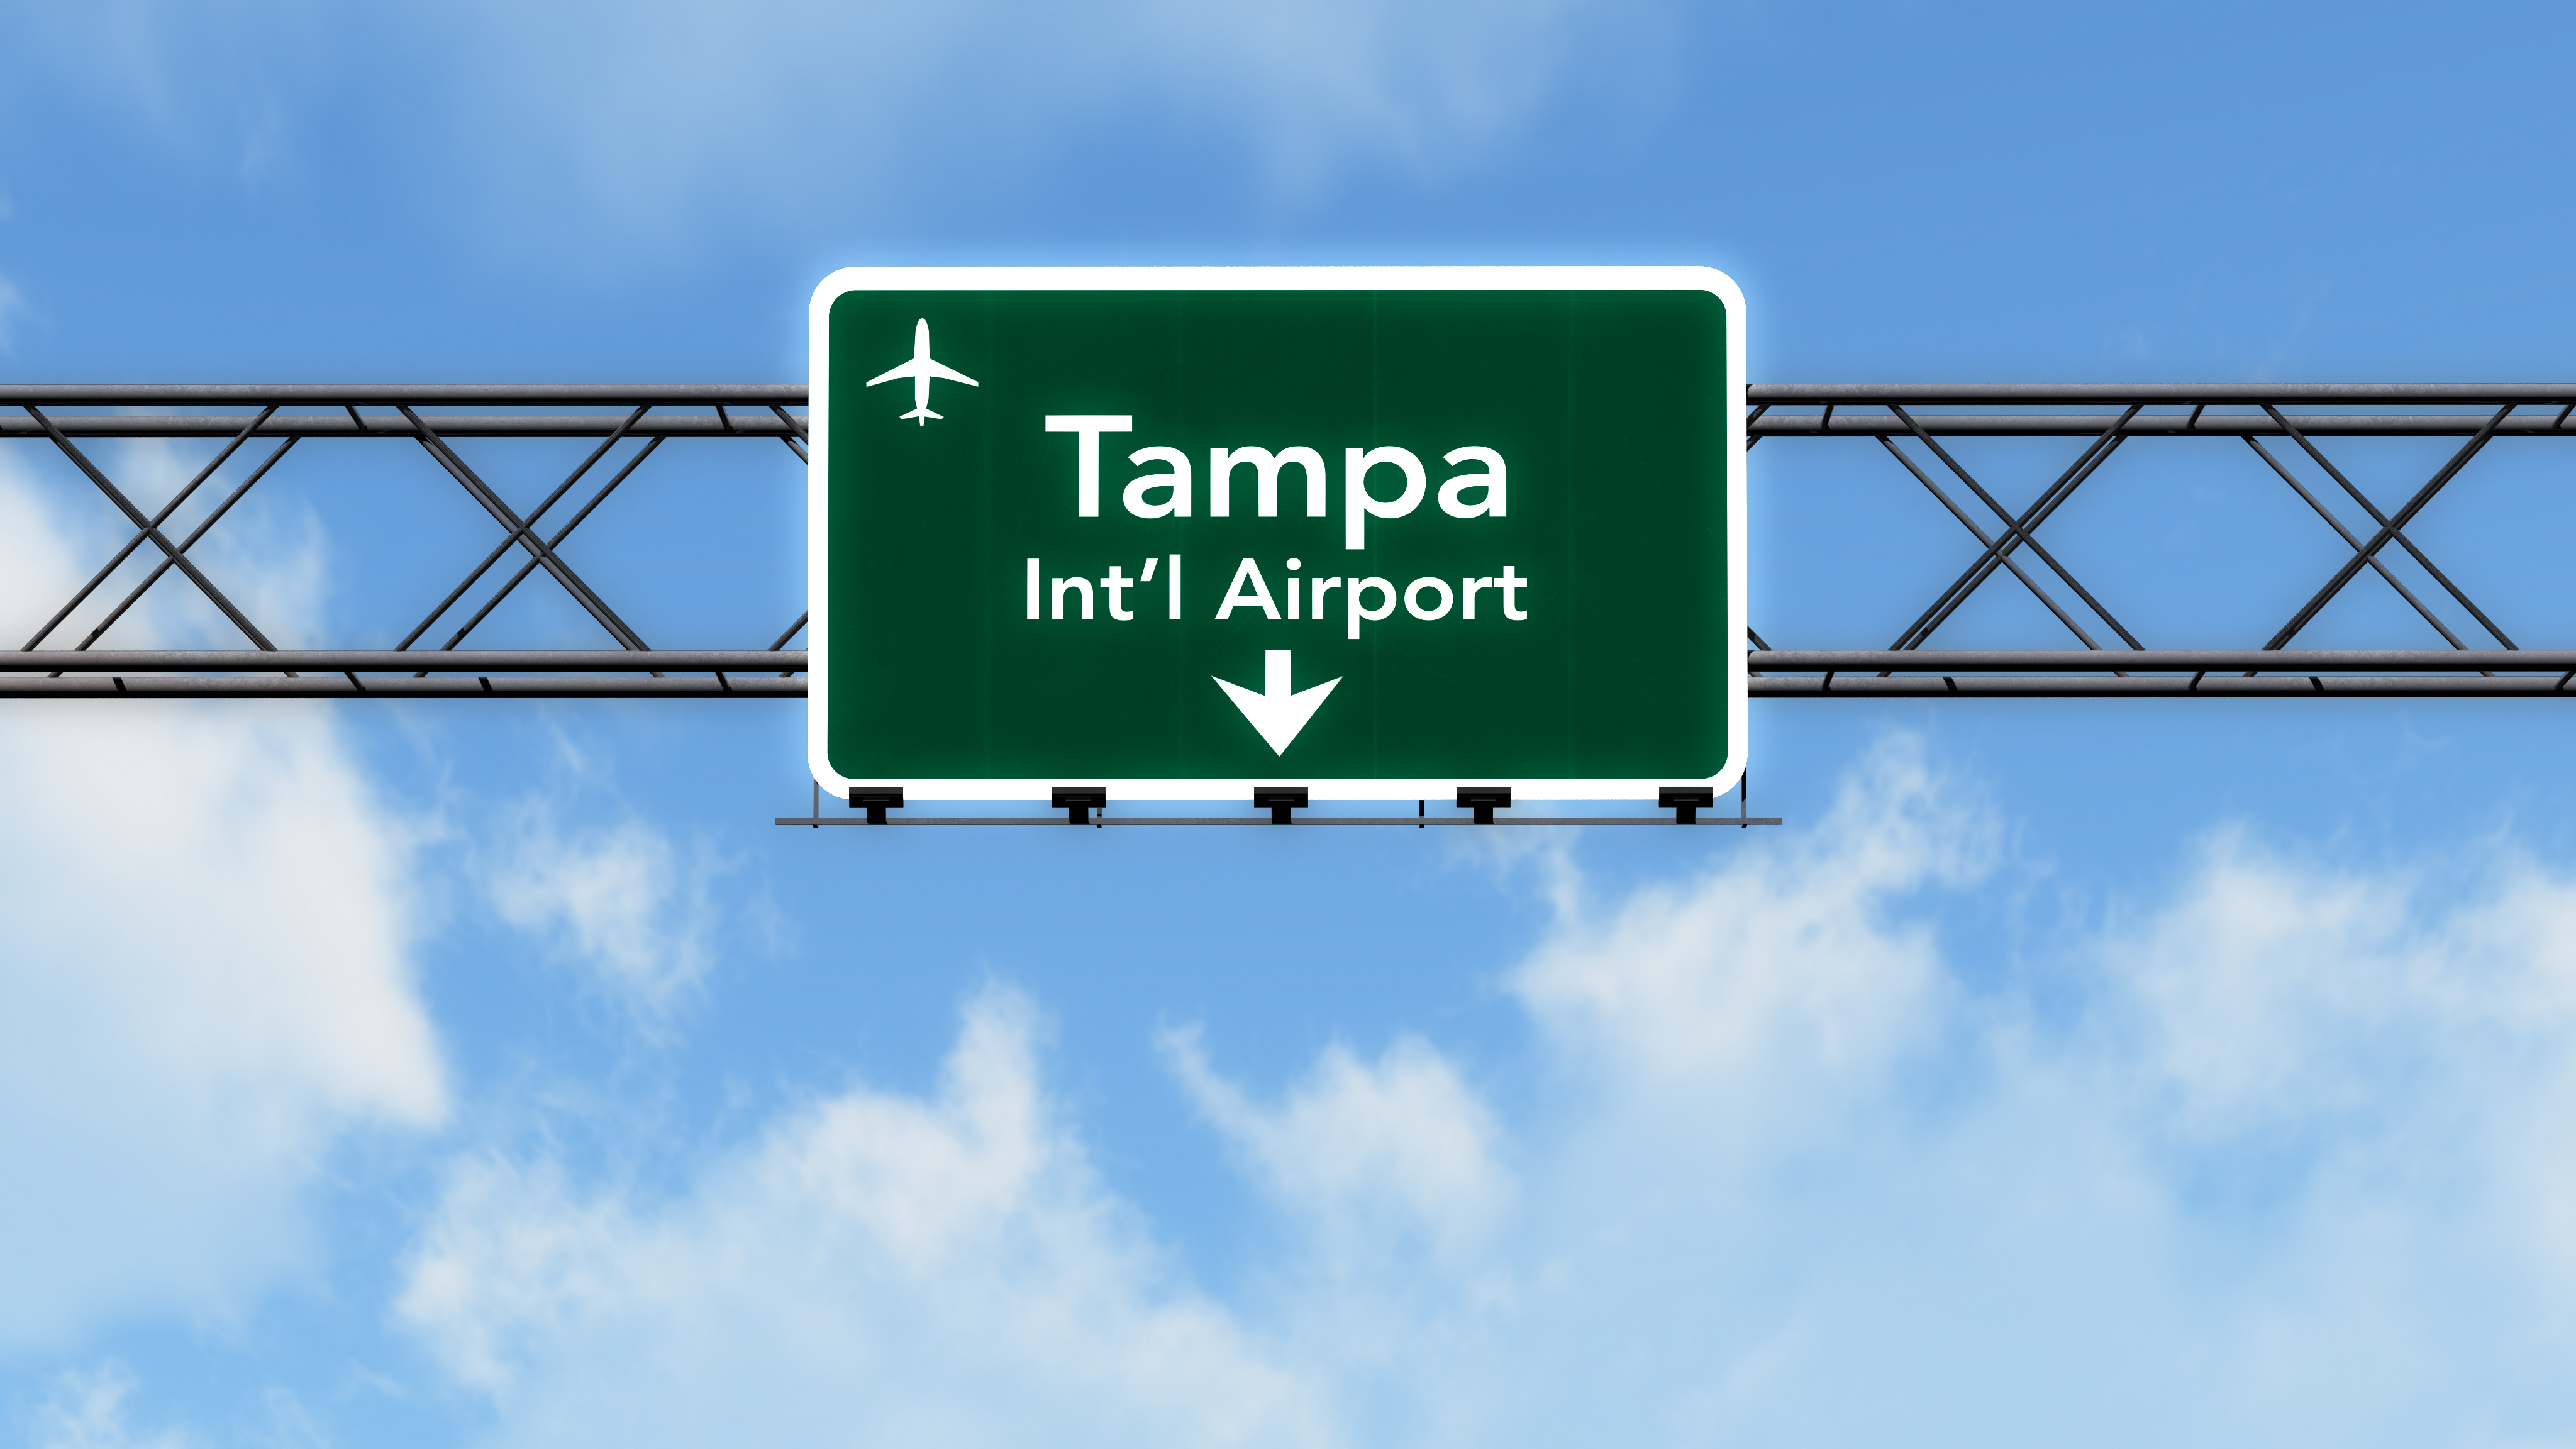 directions to Tampa airport on a sign